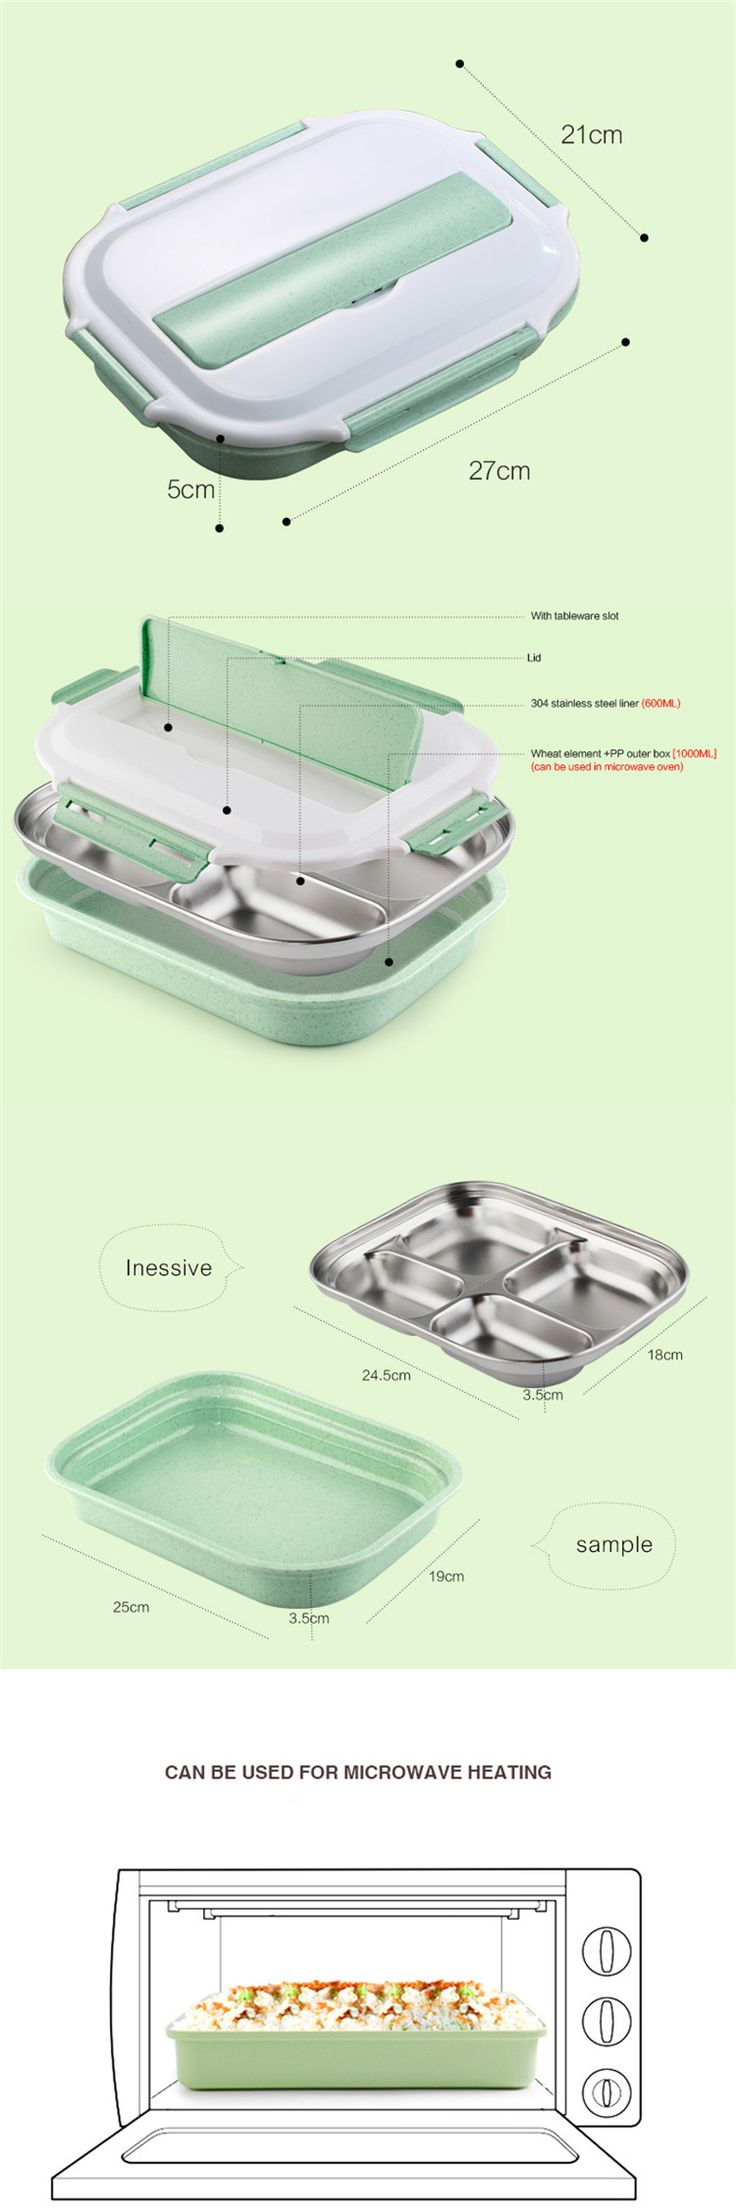 Microwavable Lunch Box Stainless Steel Bento Box Wheat Straw Food Container Picnic Camping Cheap - NewChic Mobile.